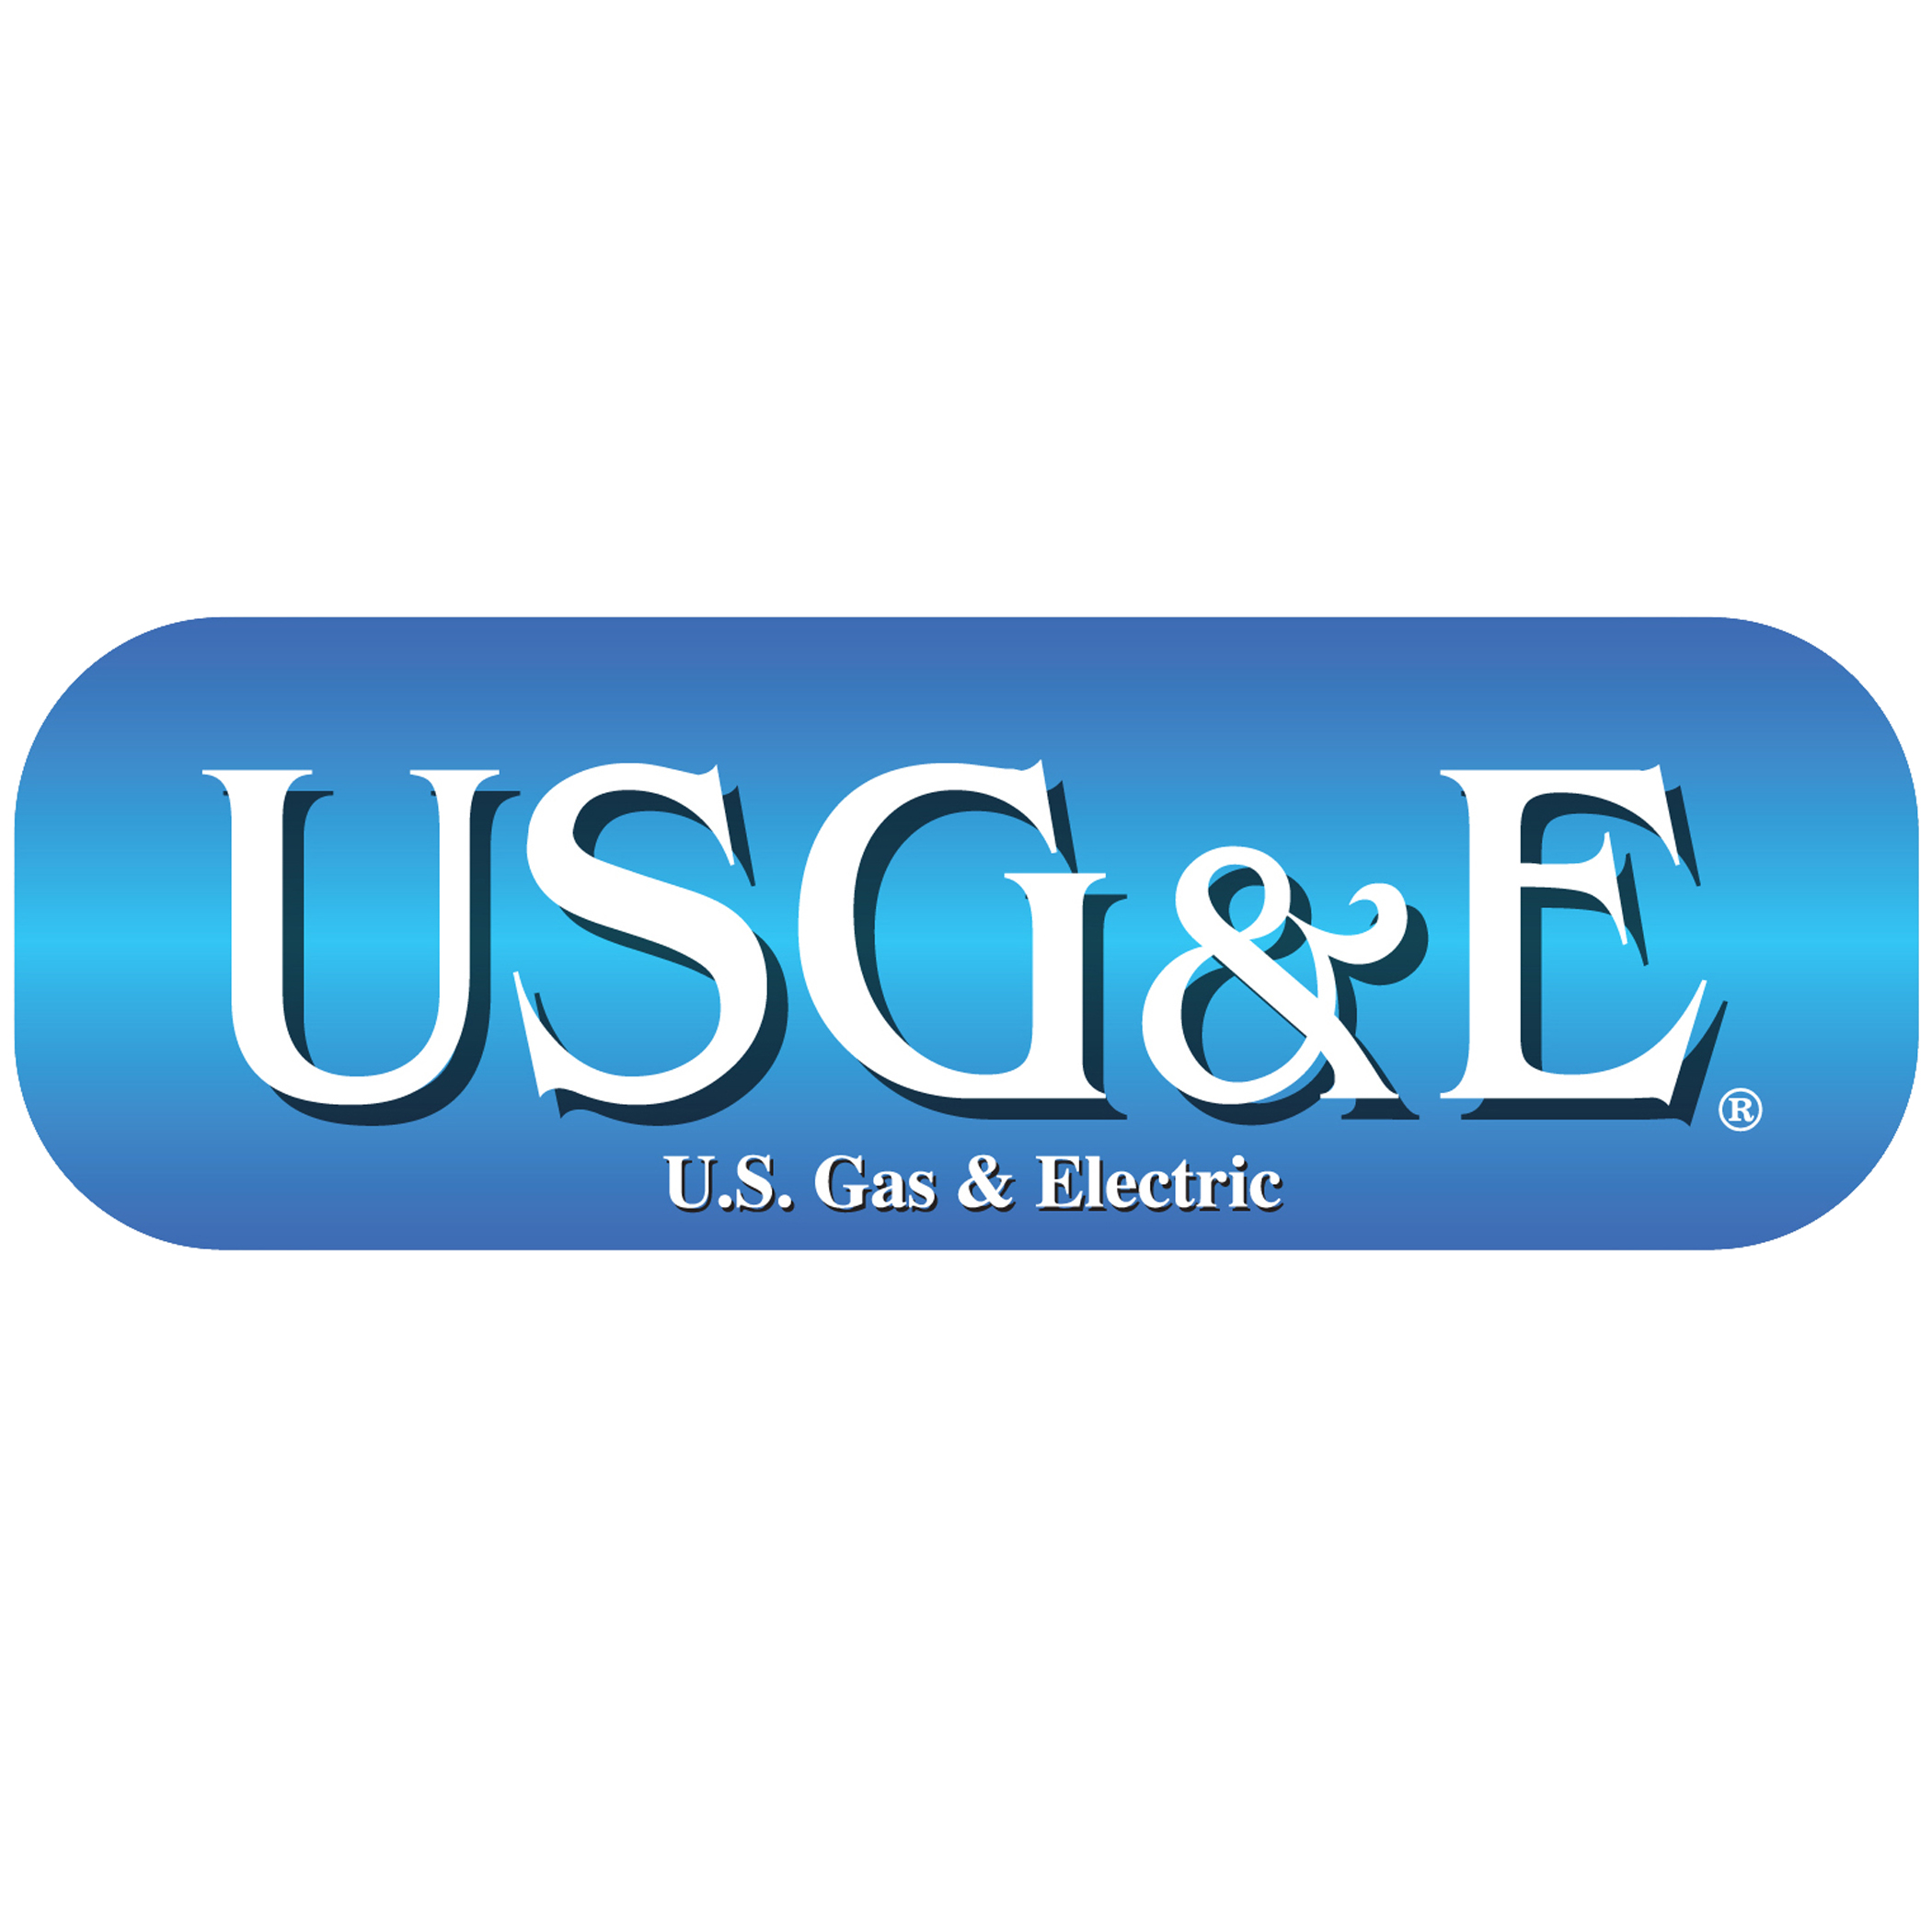 U.S Gas & Electric